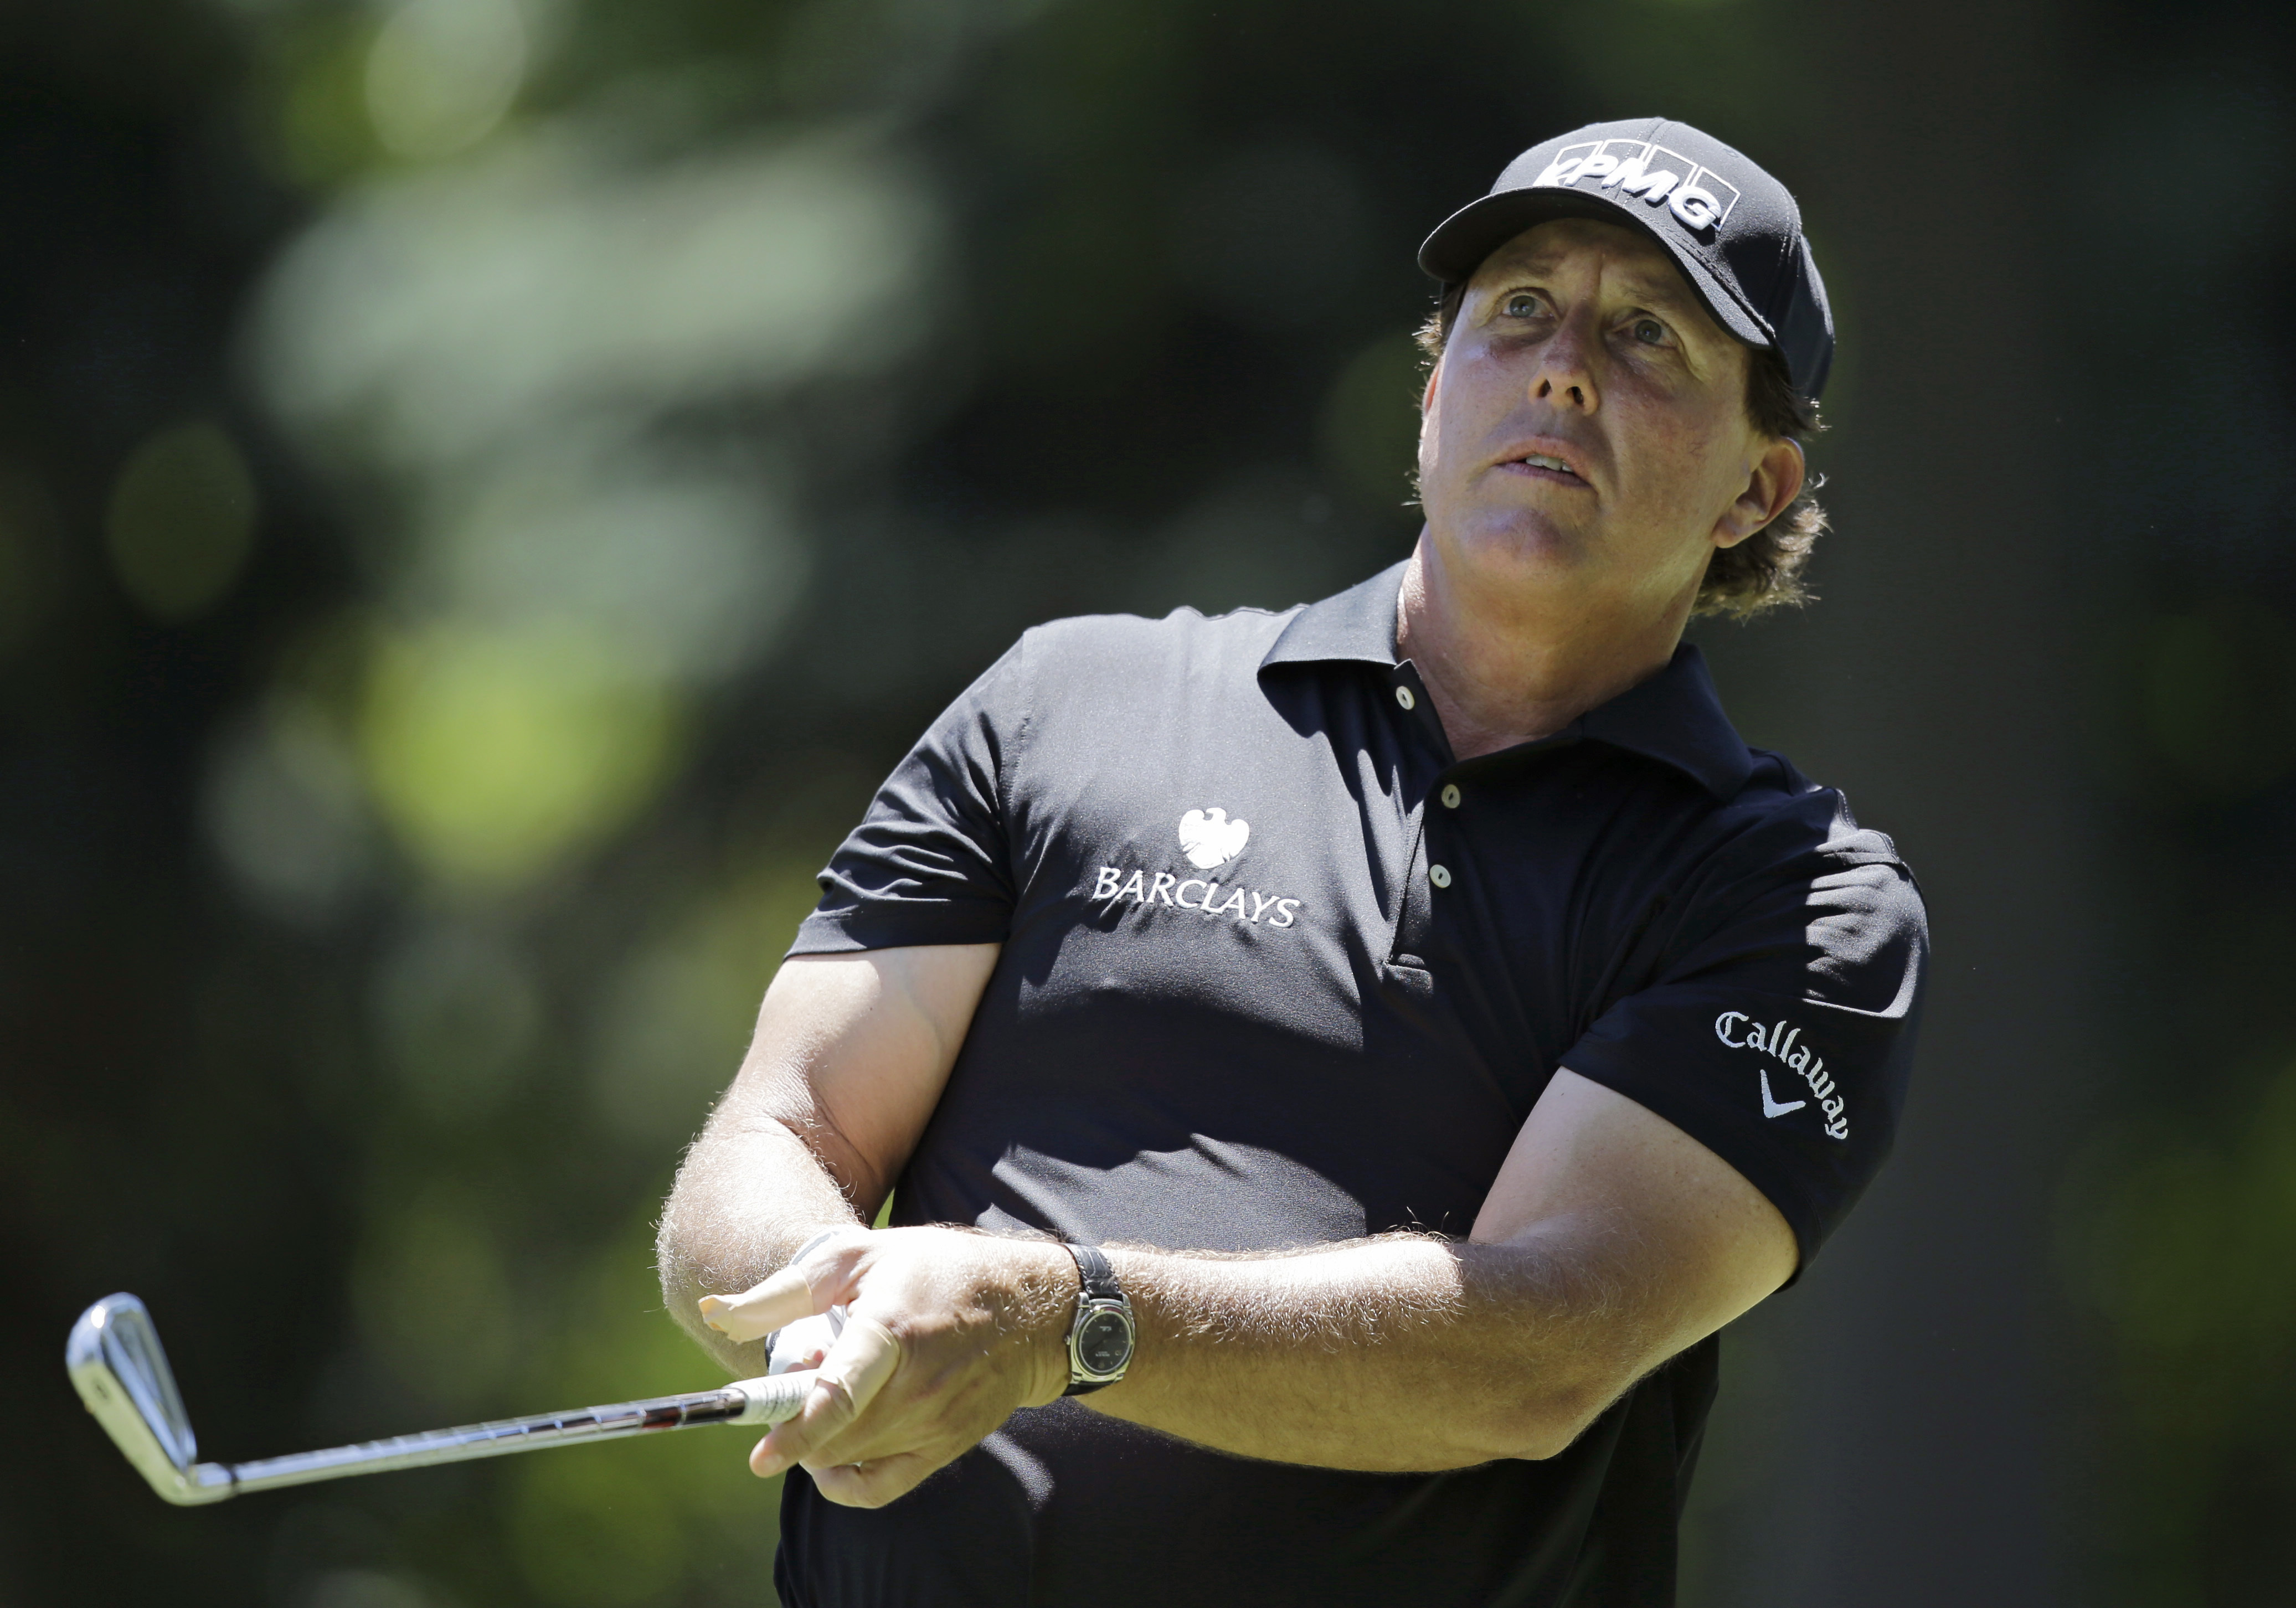 Phil Mickelson hits on the seventh hole during the first round of the Bridgestone Invitational golf tournament at Firestone Country Club, Thursday, June 30, 2016, in Akron, Ohio. (AP Photo/Tony Dejak)